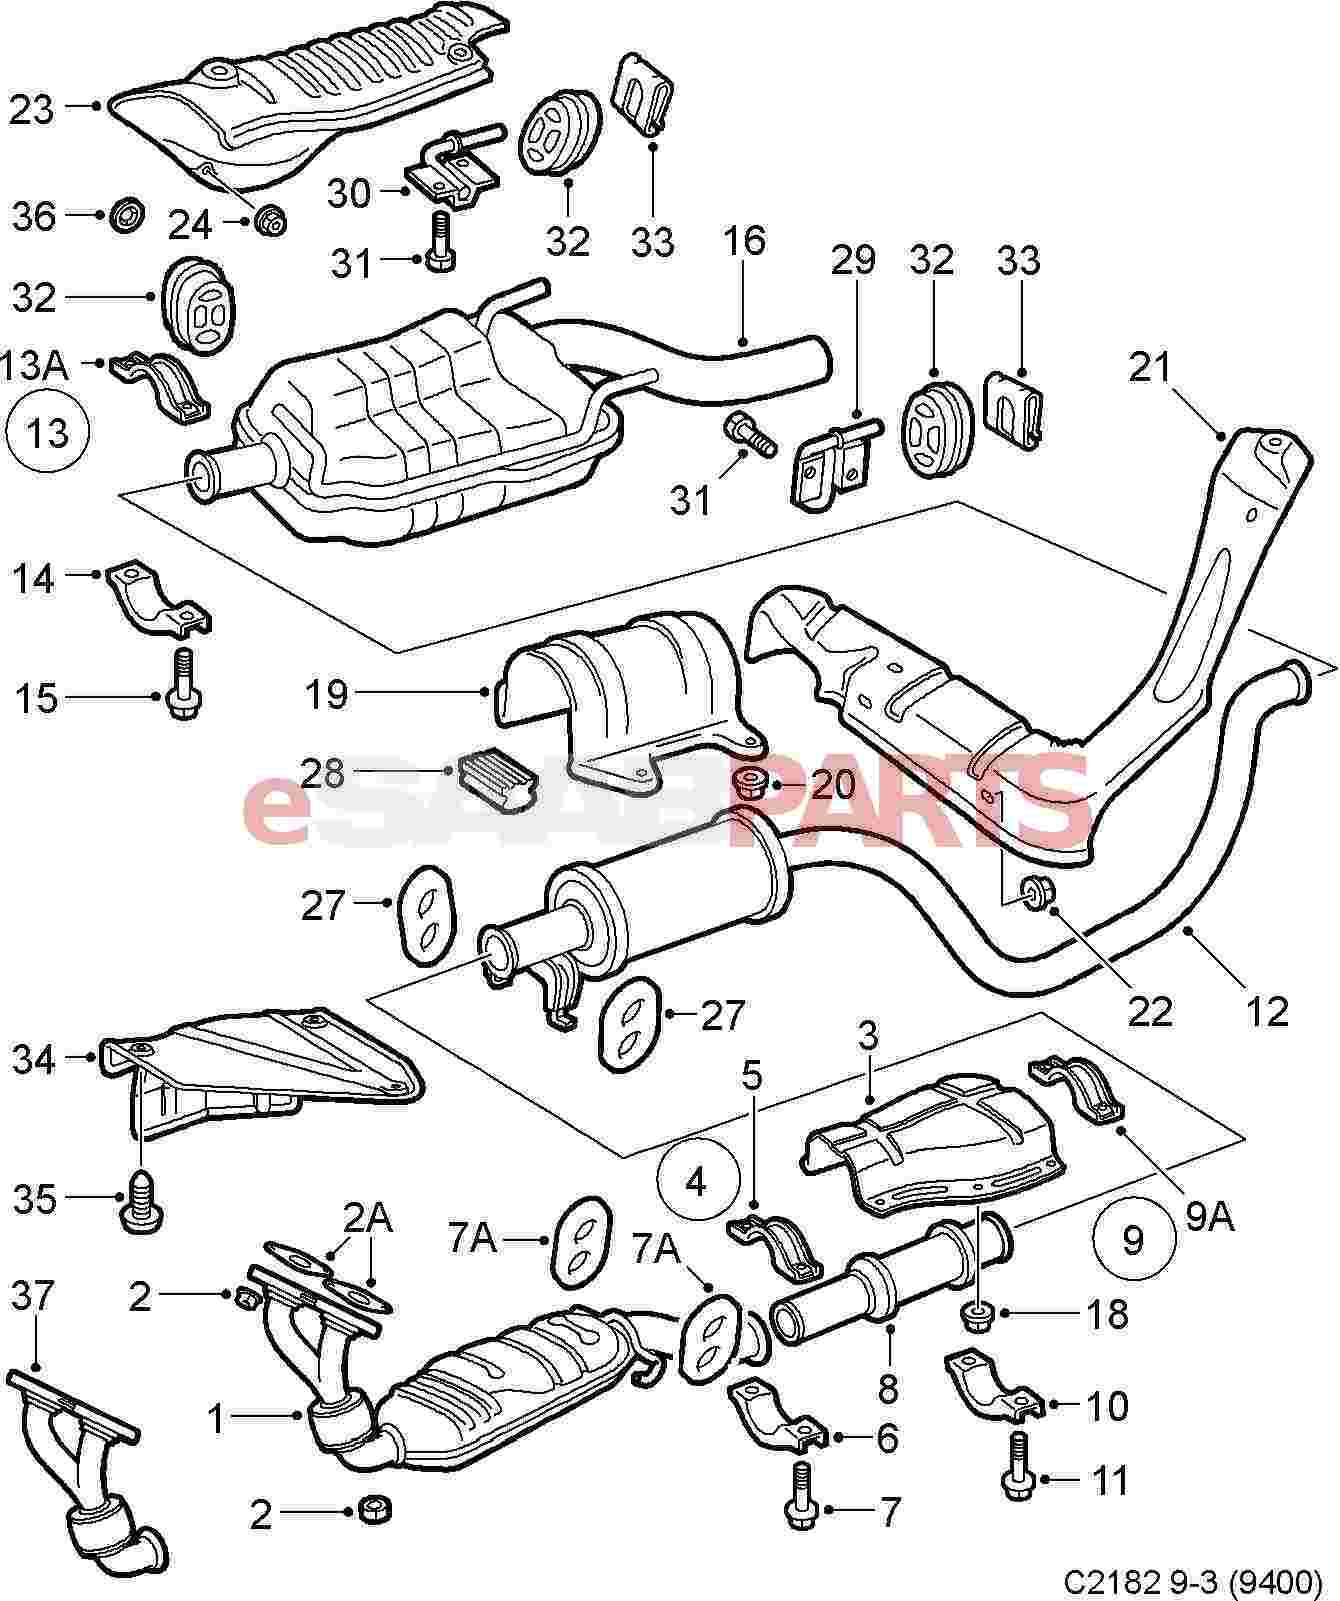 hight resolution of esaabparts com saab 9 3 9400 engine parts exhaust exhaust system